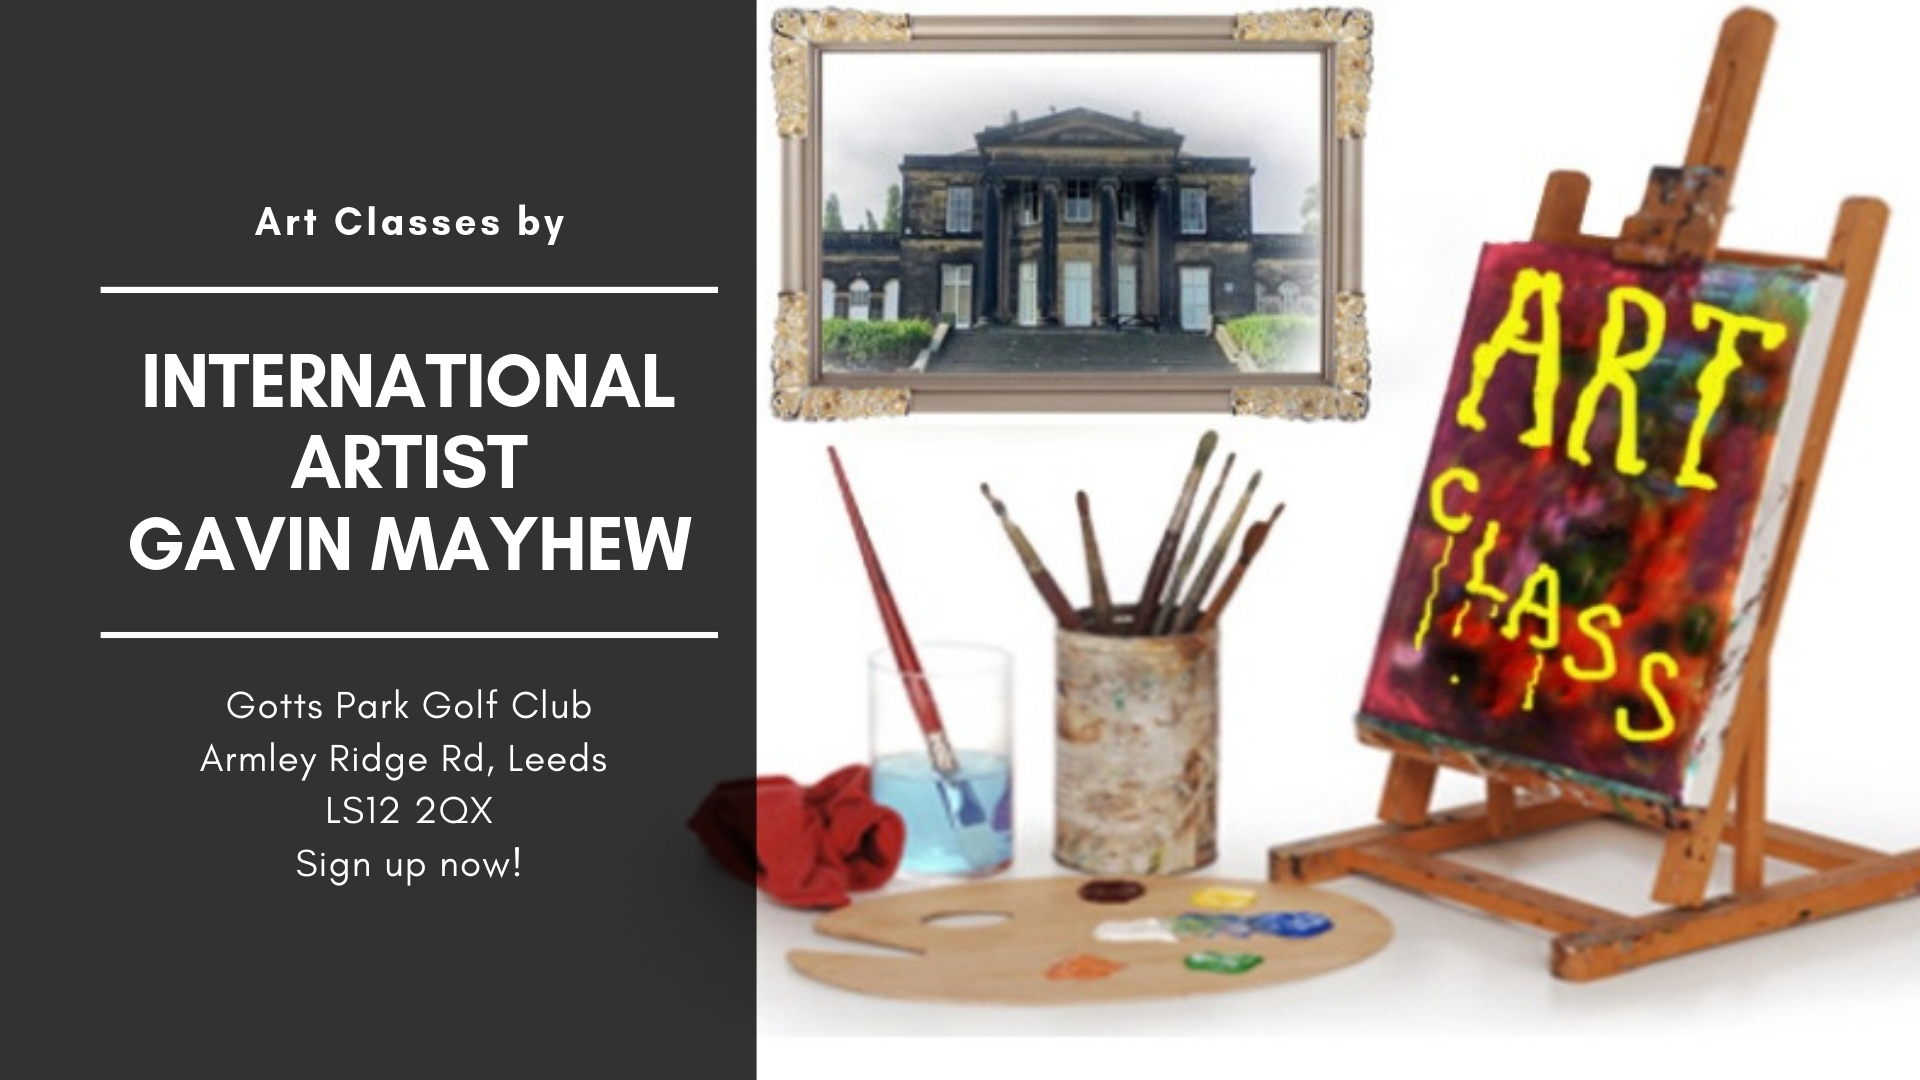 Art Classes in Leeds with international artist Gavin Mayhew